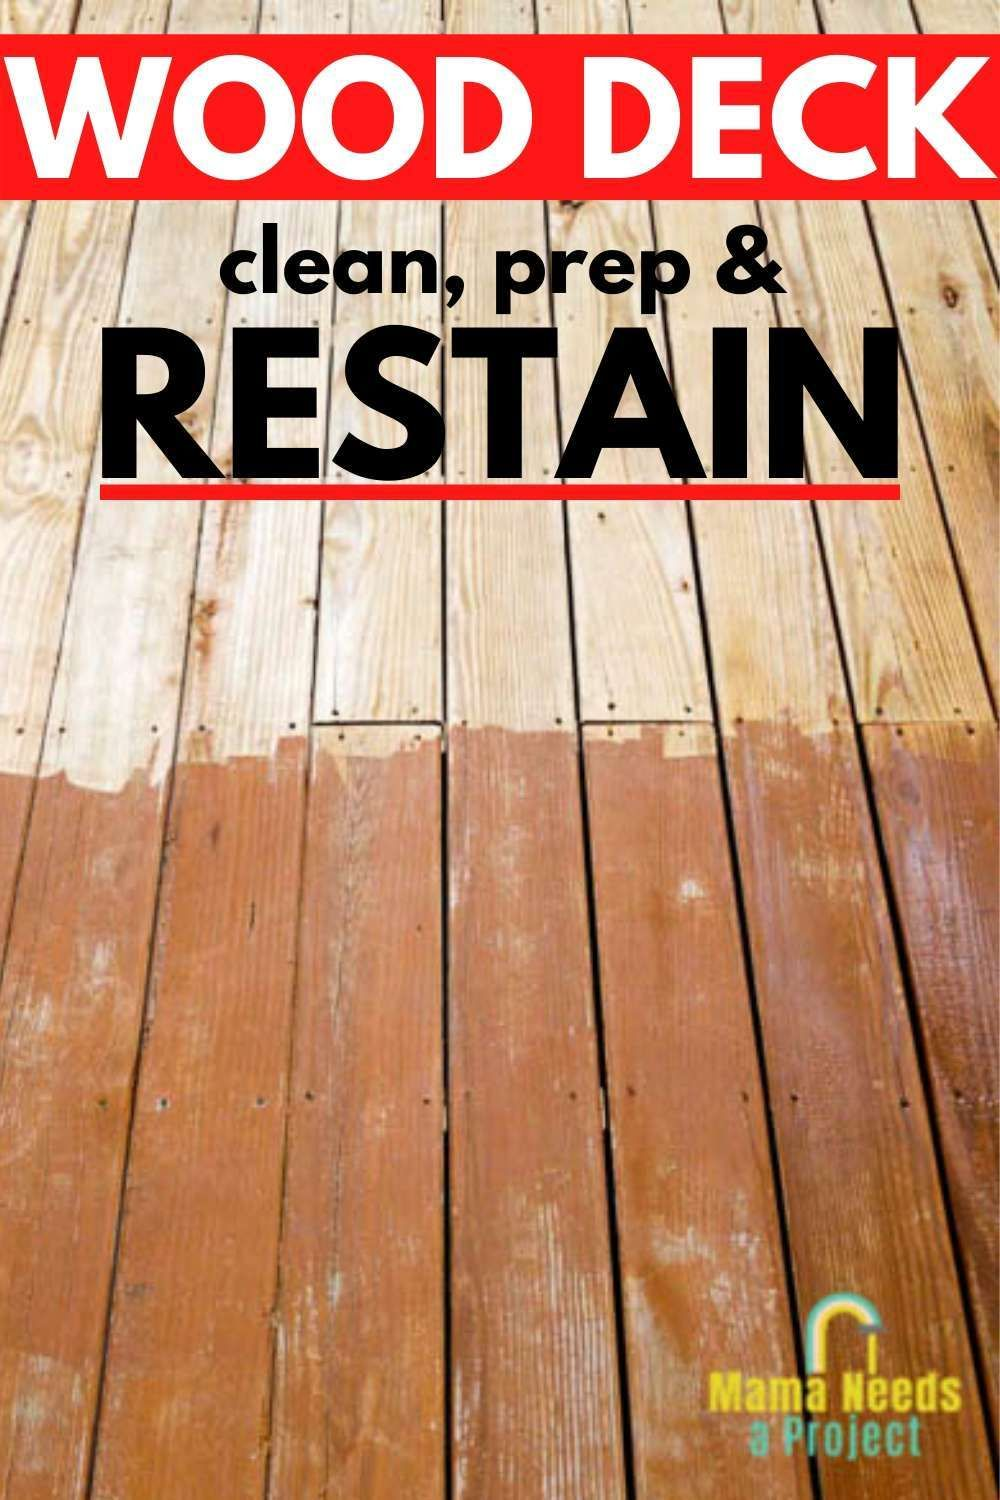 How We Restained Our Wood Deck Deck Cleaning Prep And Staining Mama Needs A Project In 2020 Cleaning Deck Wood Wood Deck Deck Cleaning